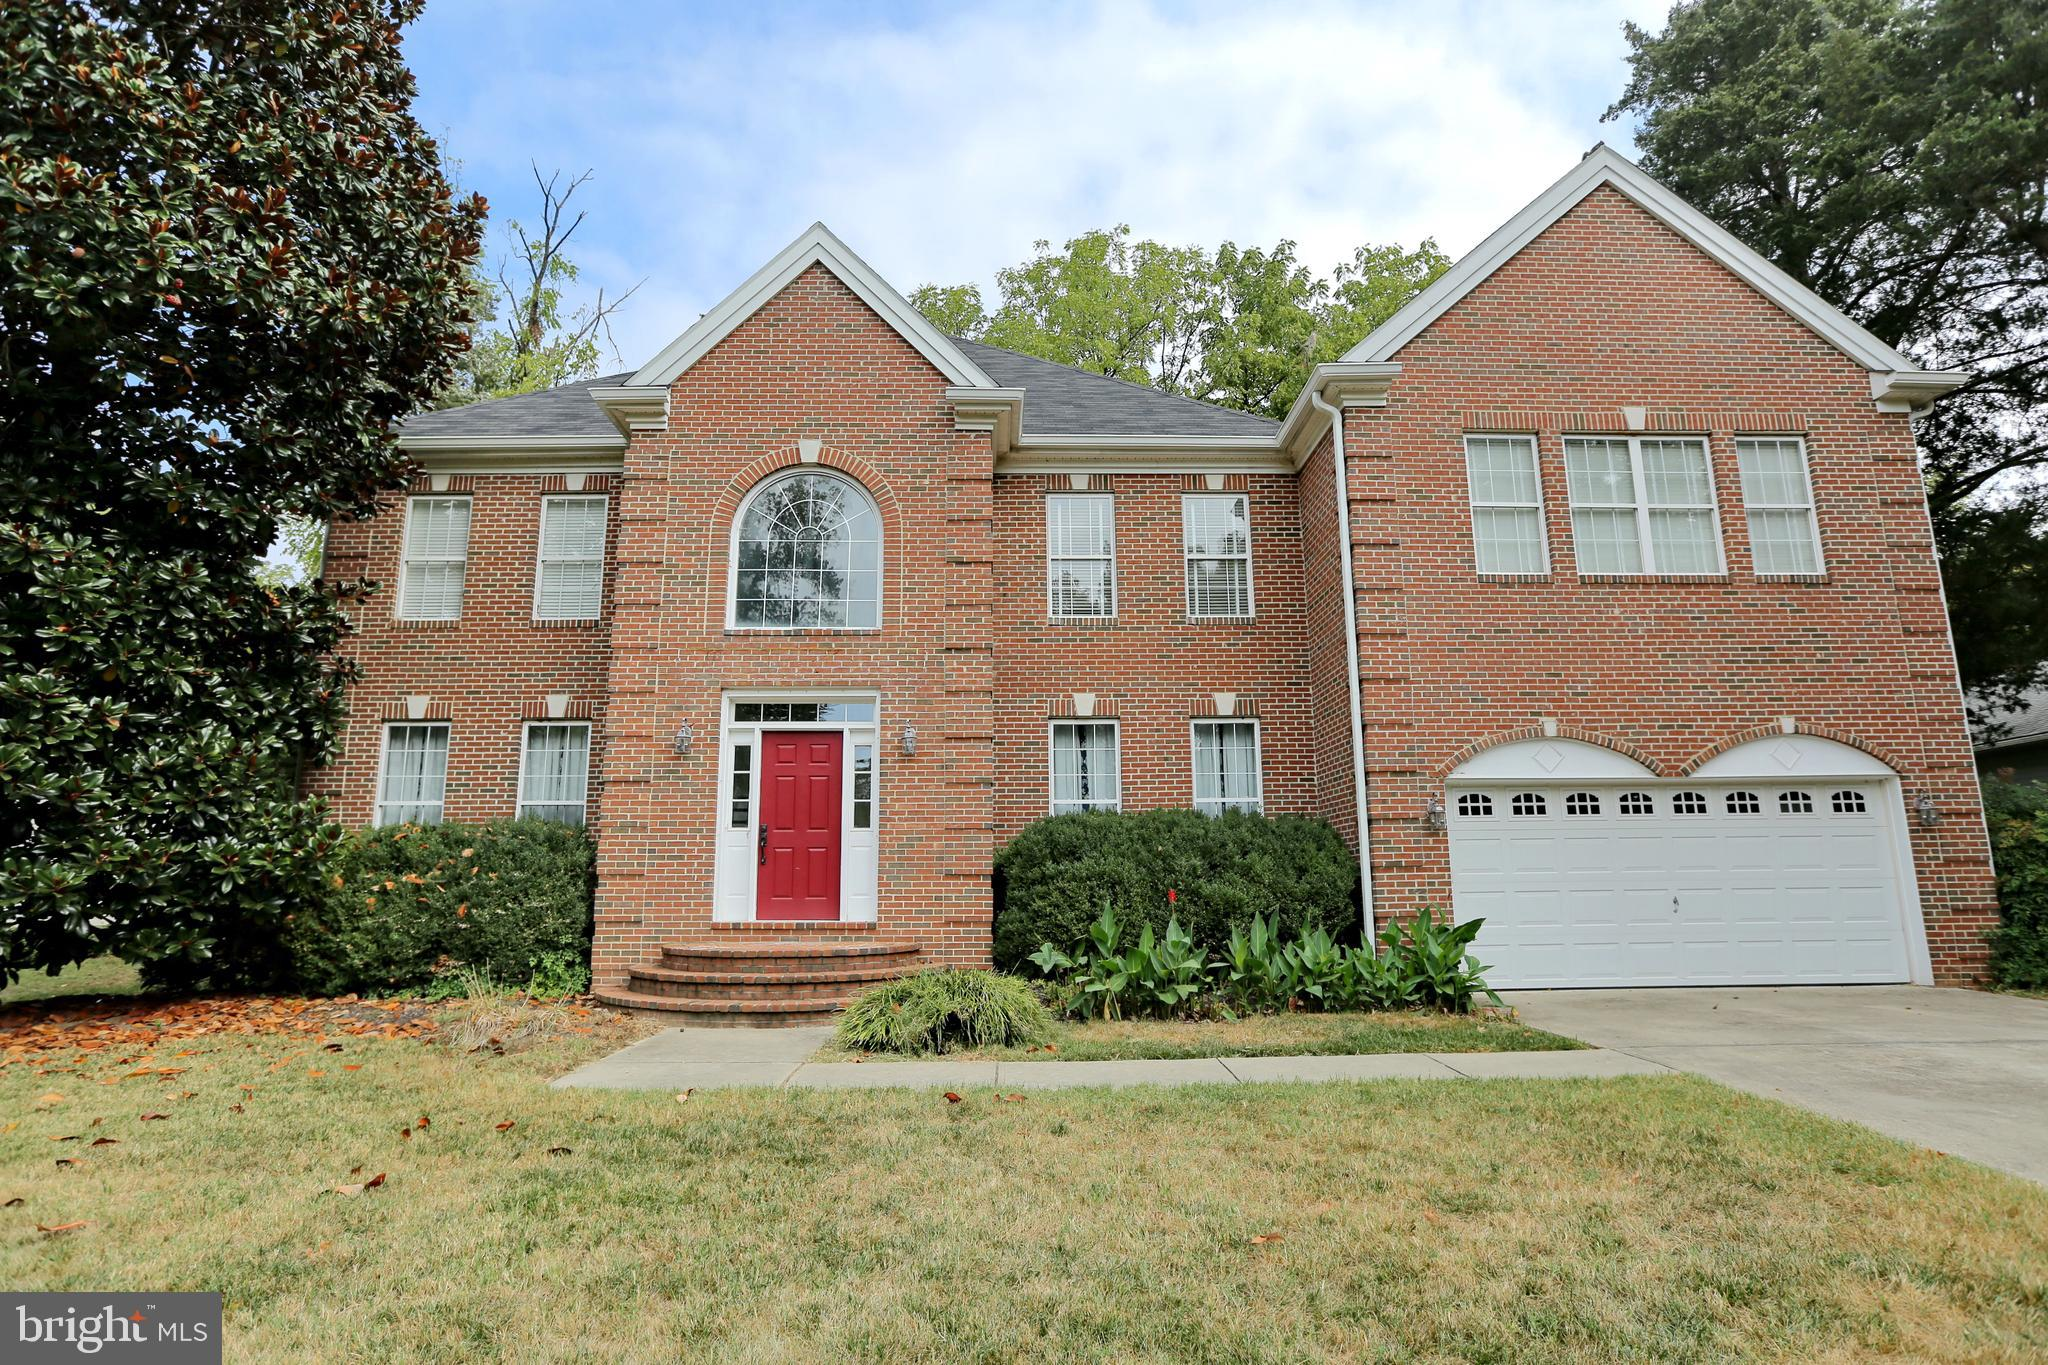 11542 WOLLASTON CIRCLE, SWAN POINT, MD 20645